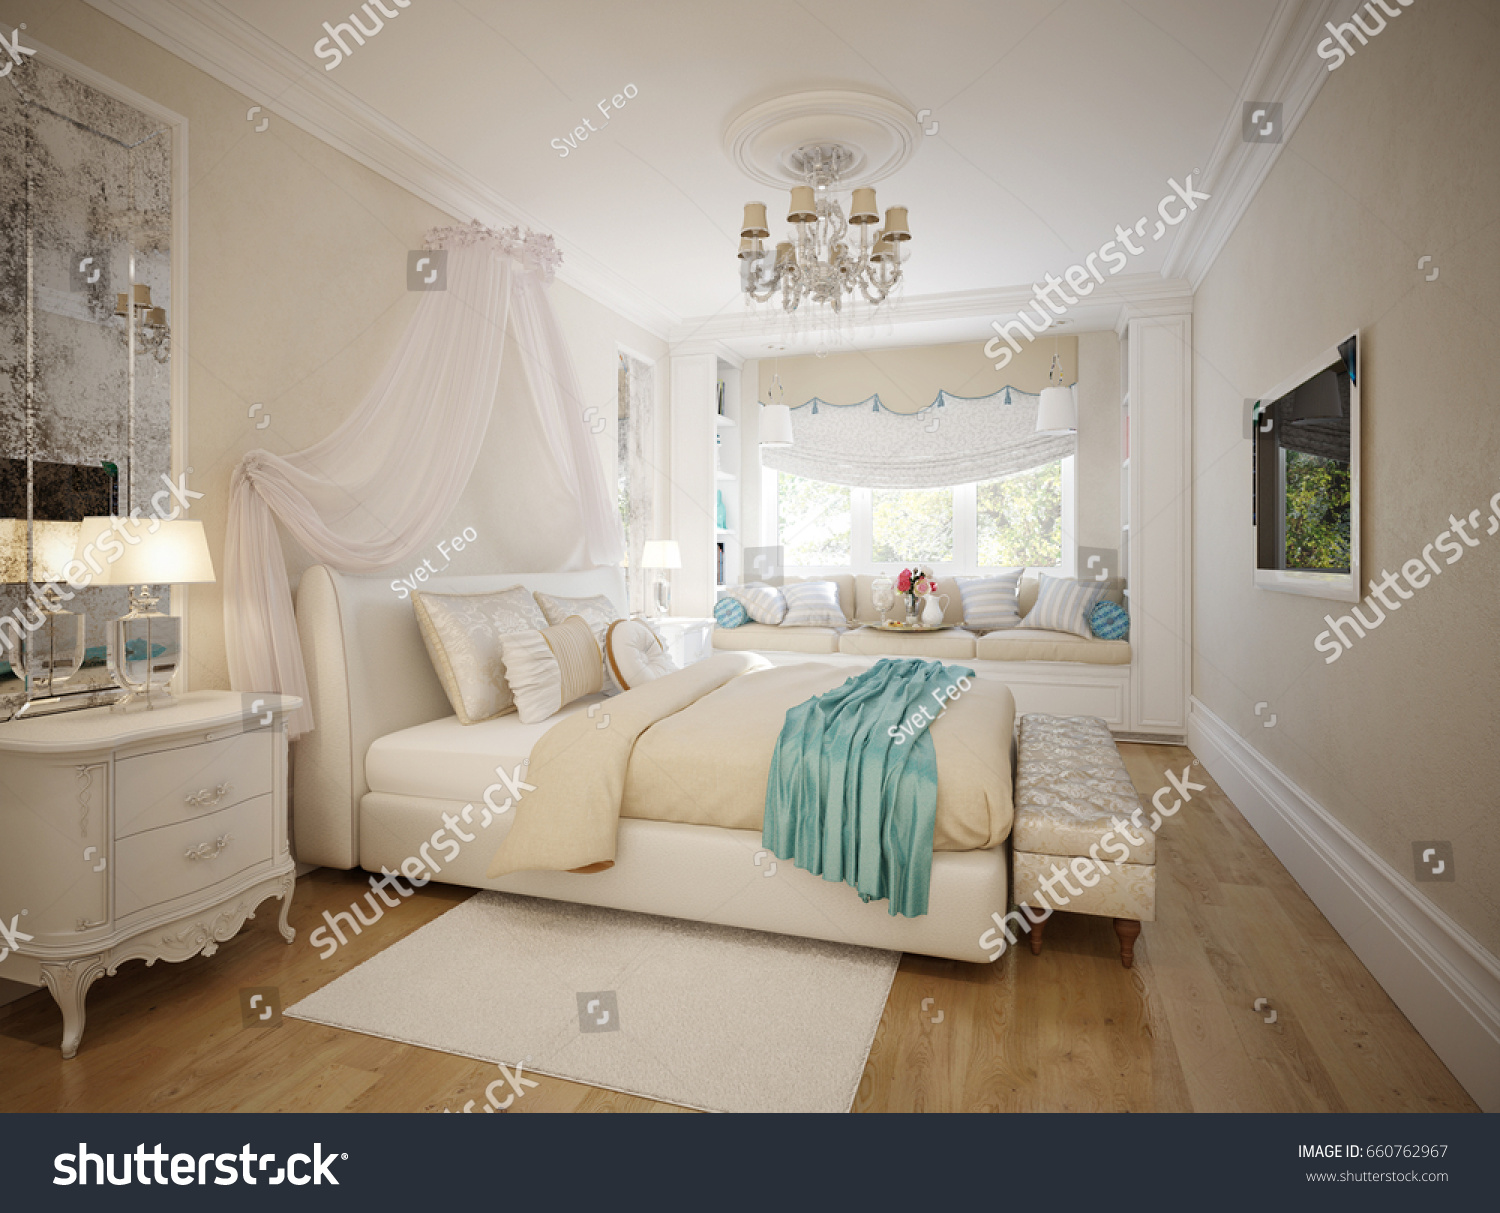 Traditional Classic Modern Provence Bedroom Interior Design With White  Furniture, Aged Mirrors And Broad Window